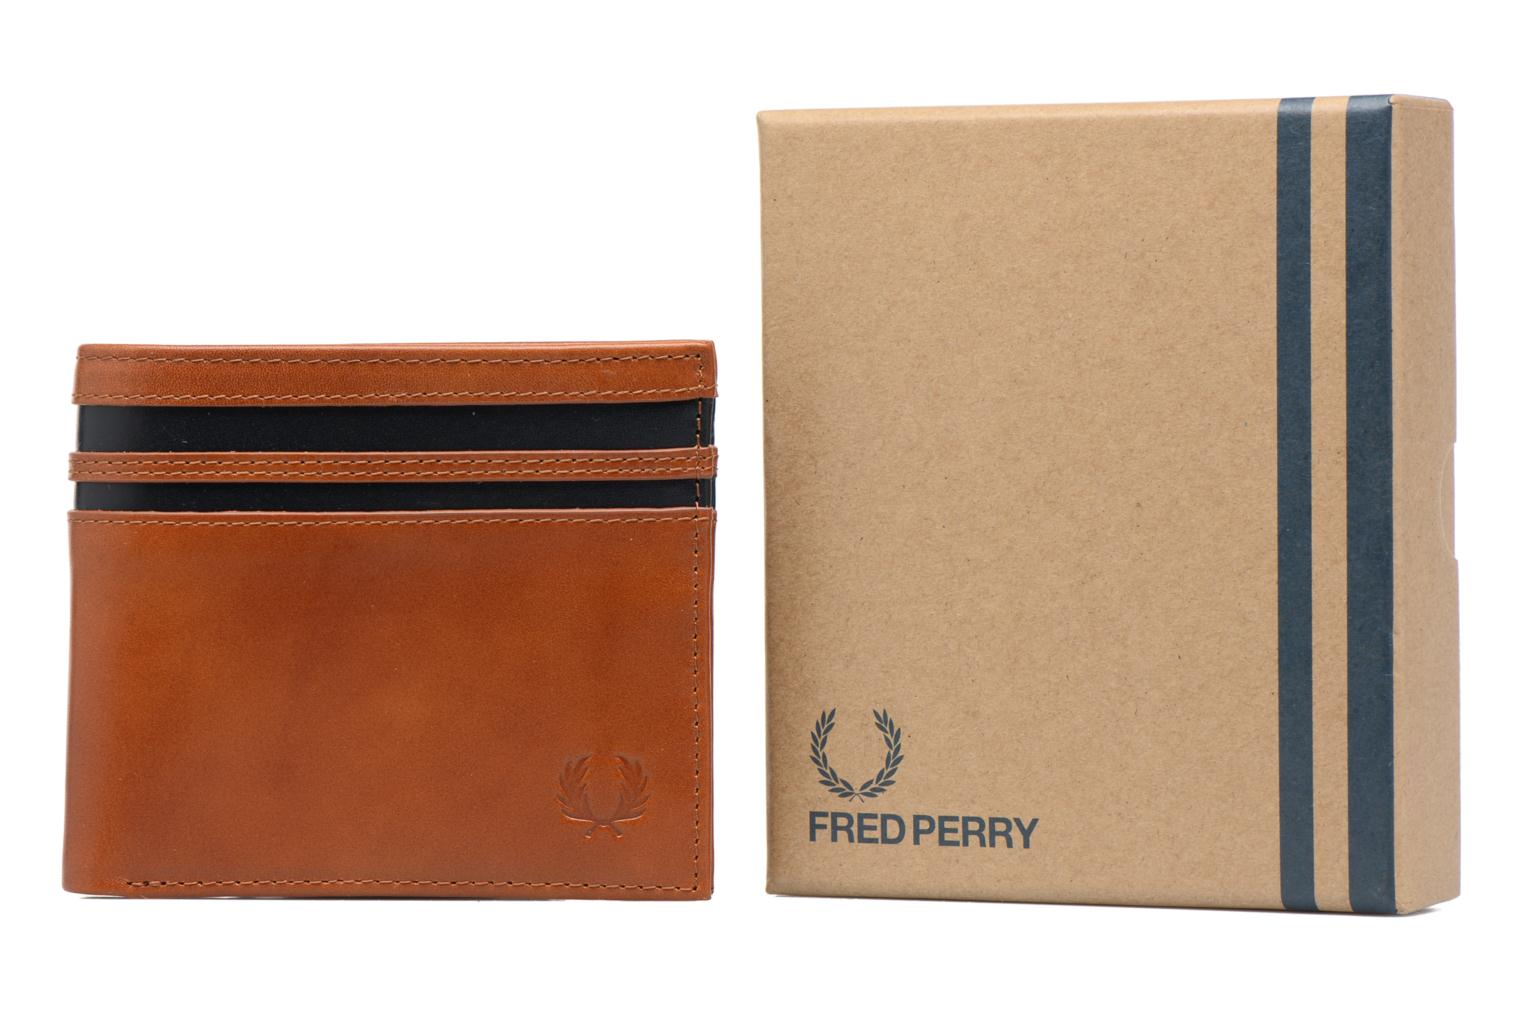 Petite Maroquinerie Fred Perry Portefeuille cuir Marron vue gauche